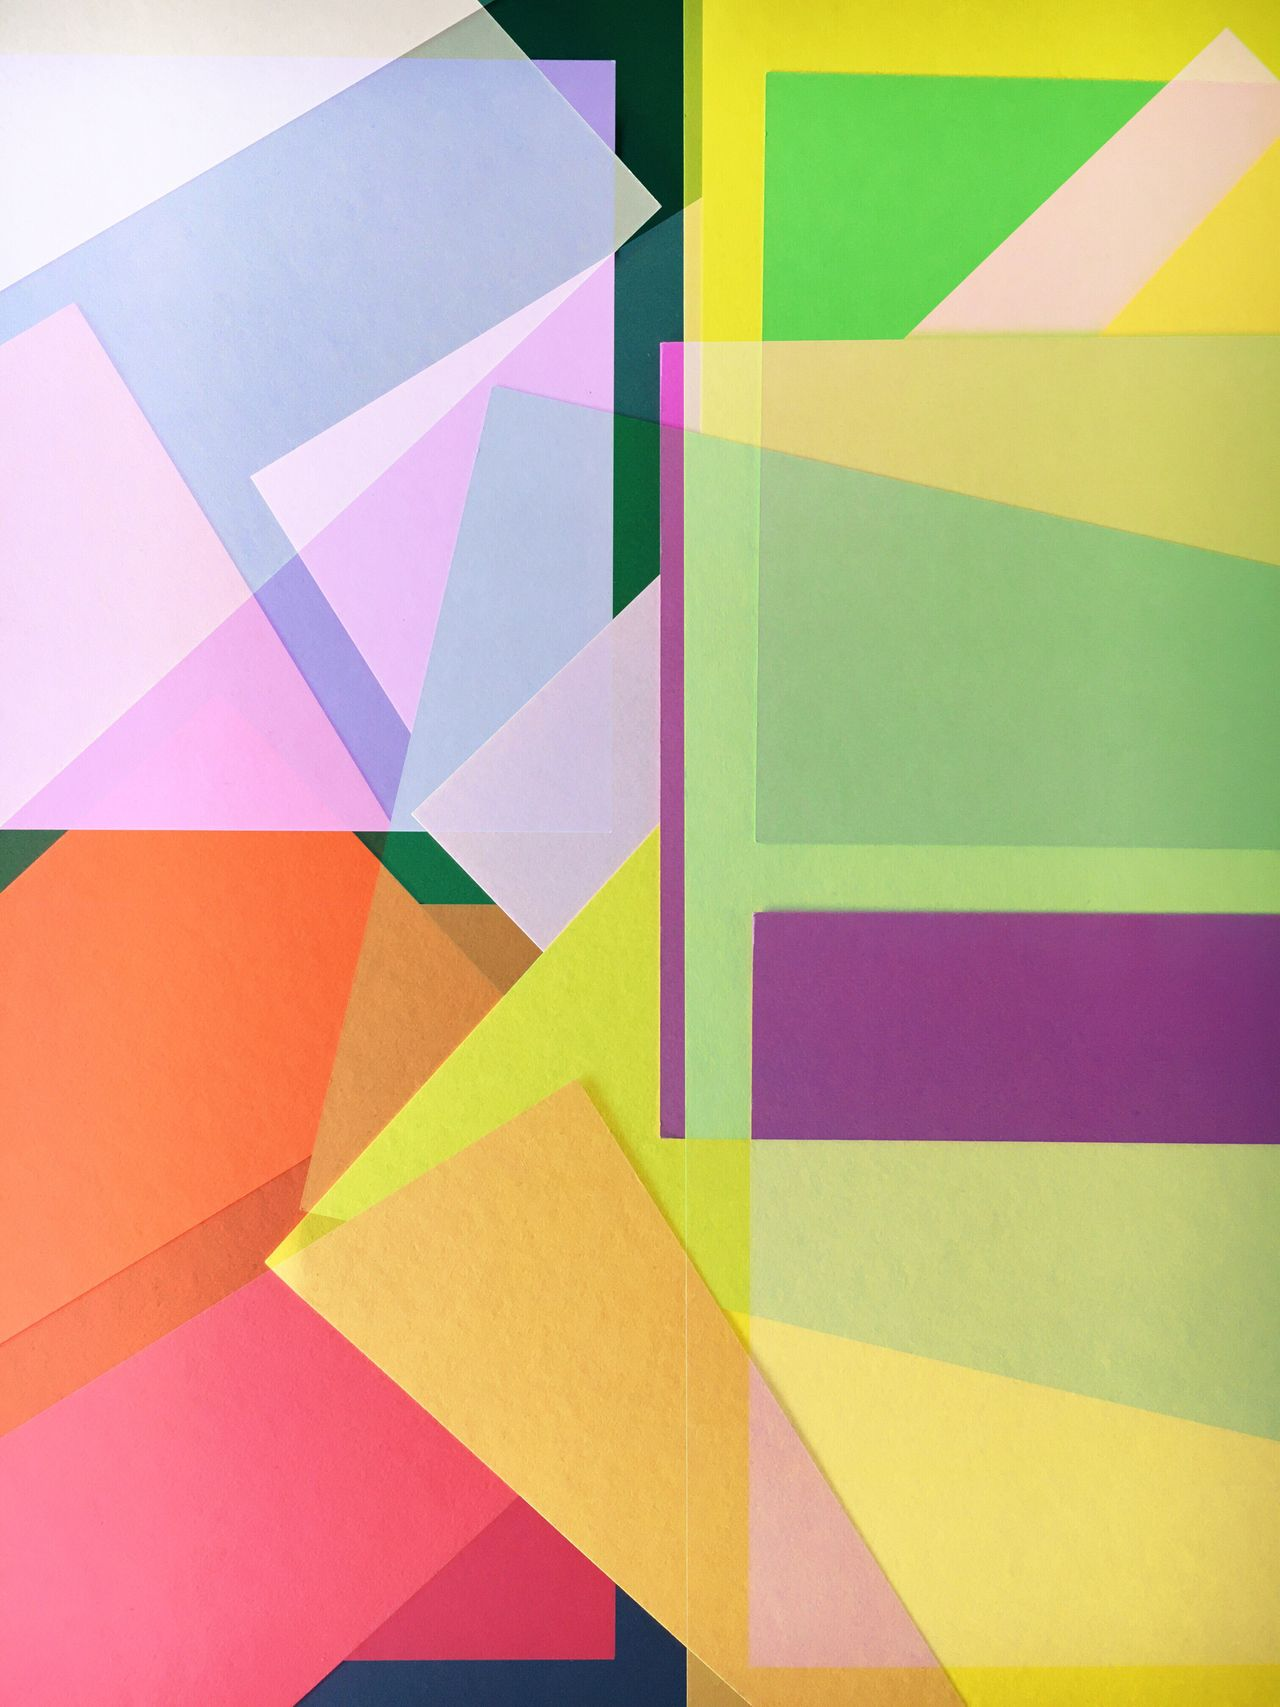 Multi Colored Backgrounds Indoors  No People Close-up Day Geometric Shape Geometric ArtWork Artworks Contrasts Structure Colorful Creative Structures Design Built Structure Geometric Shapes Colored Background Abstract Lifestyles Style Building Exterior Papers Paper View